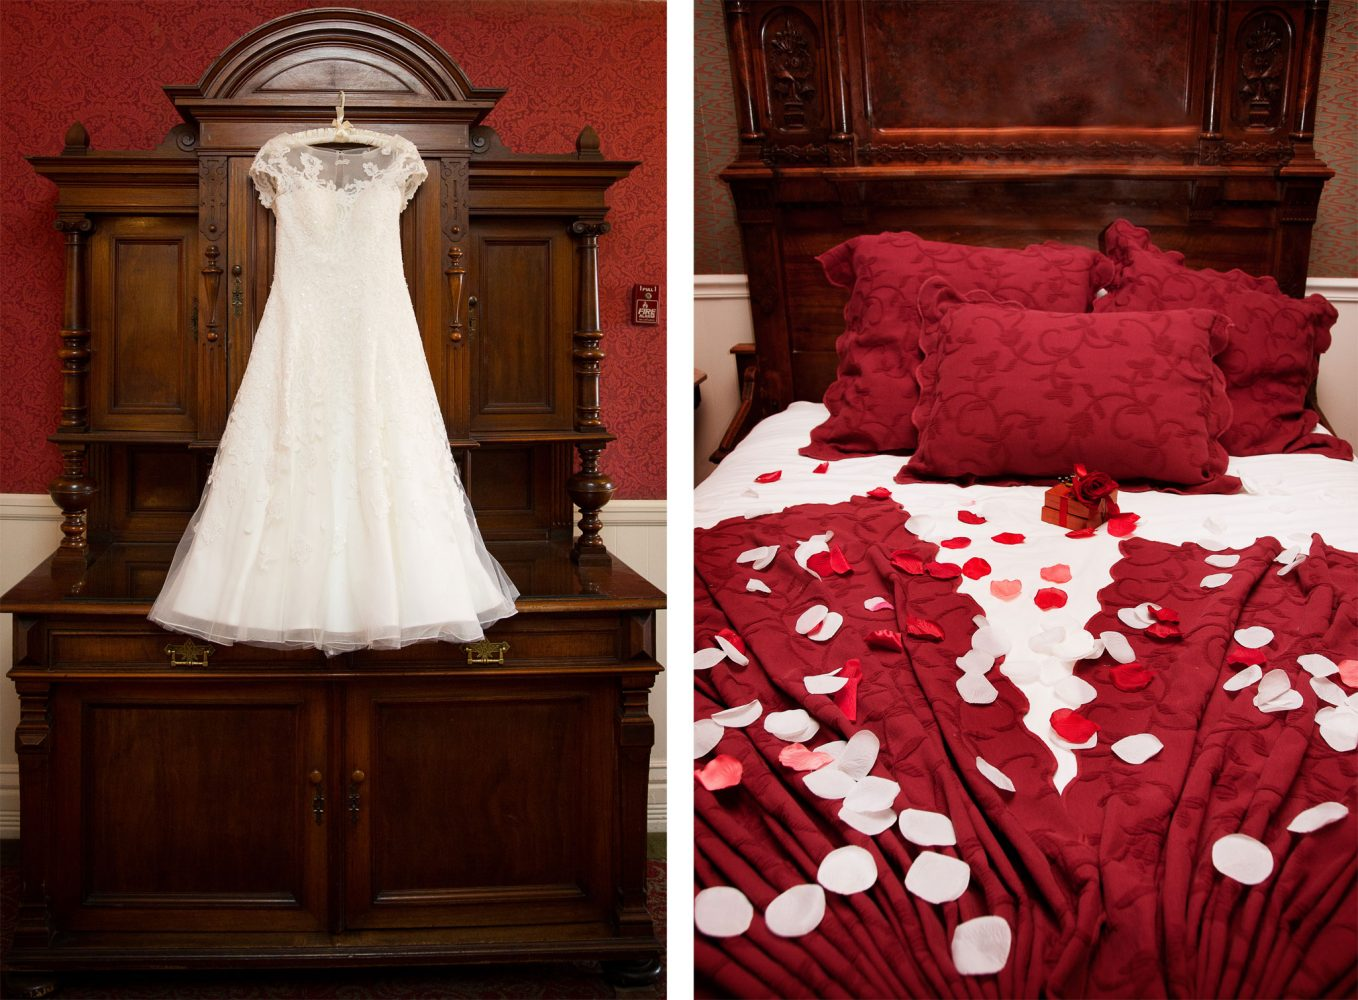 Wedding Dress in the honeymoon suite at the Historic Strater Hotel